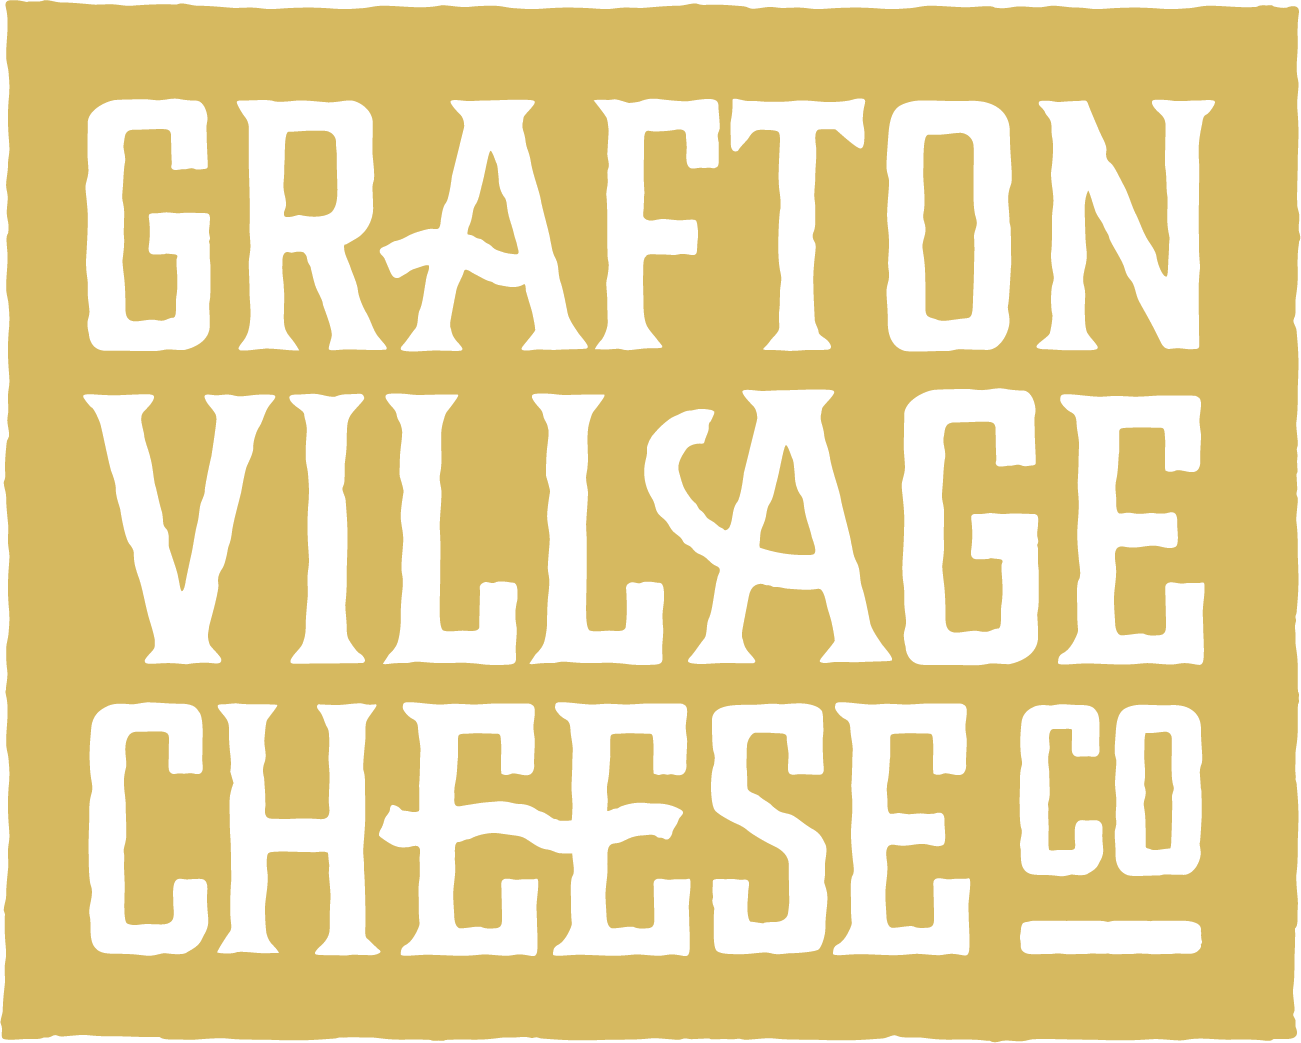 grafton village cheese.png